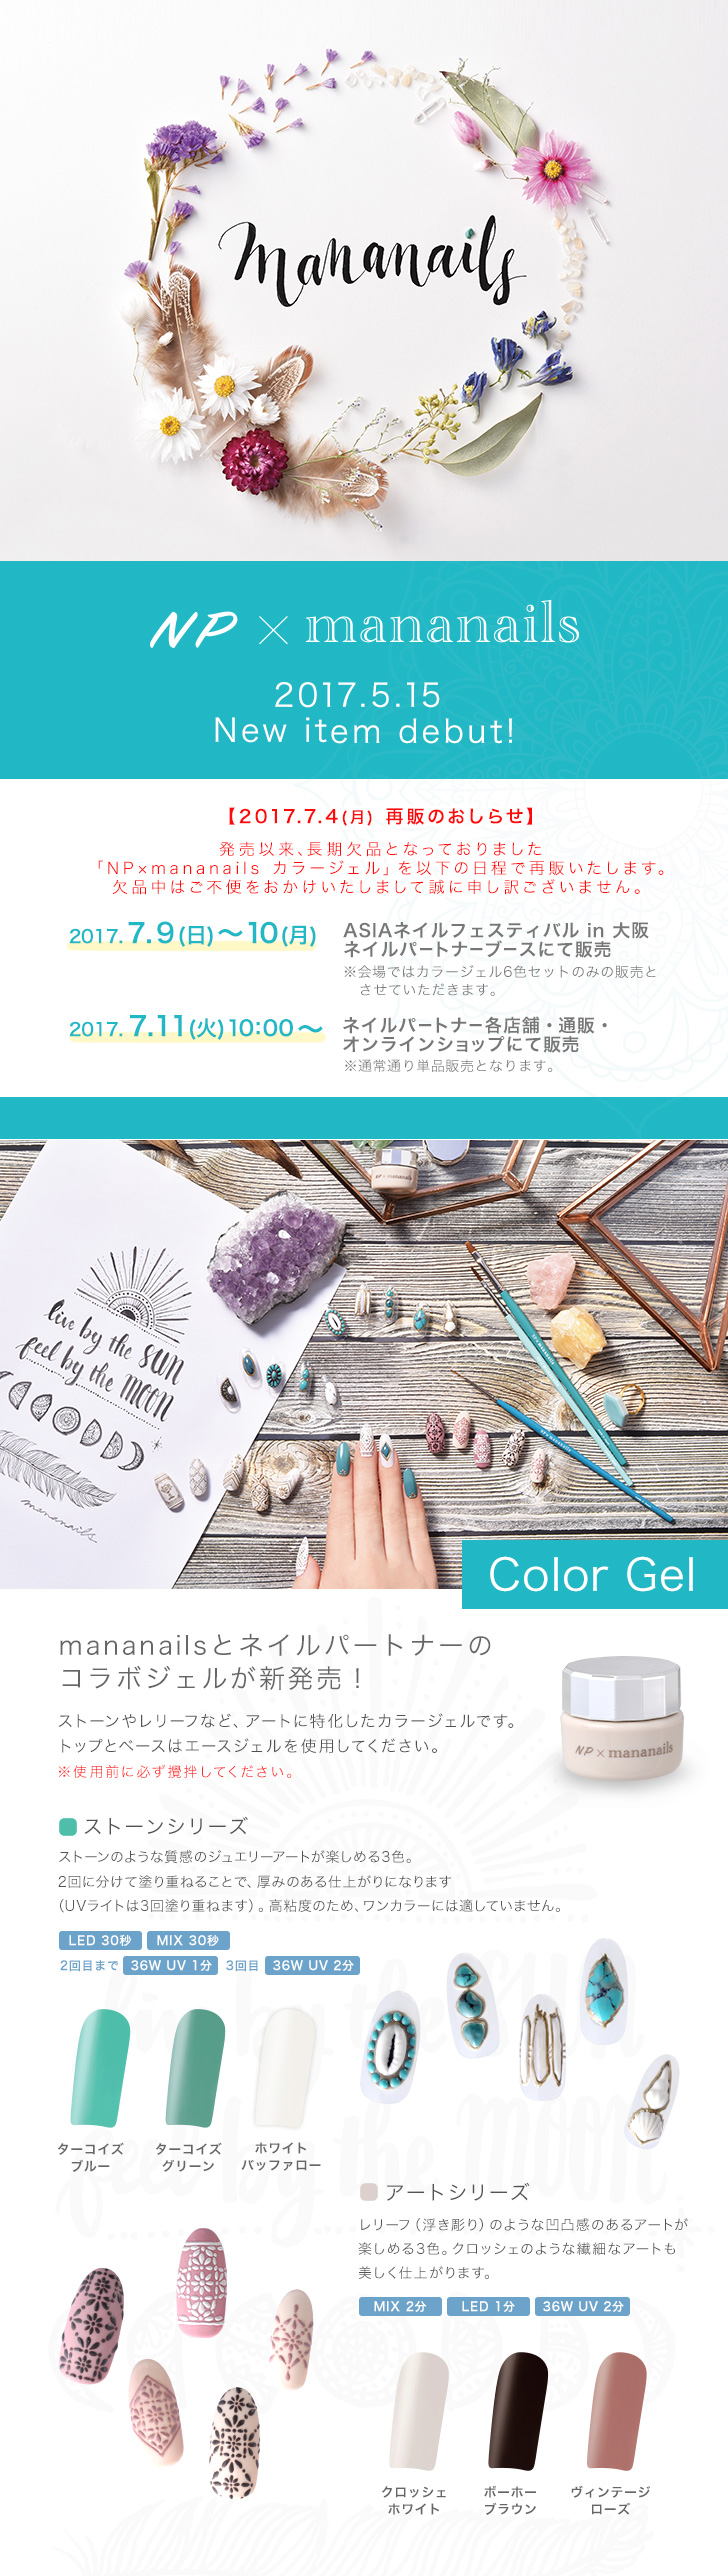 mananails_new-color_201707